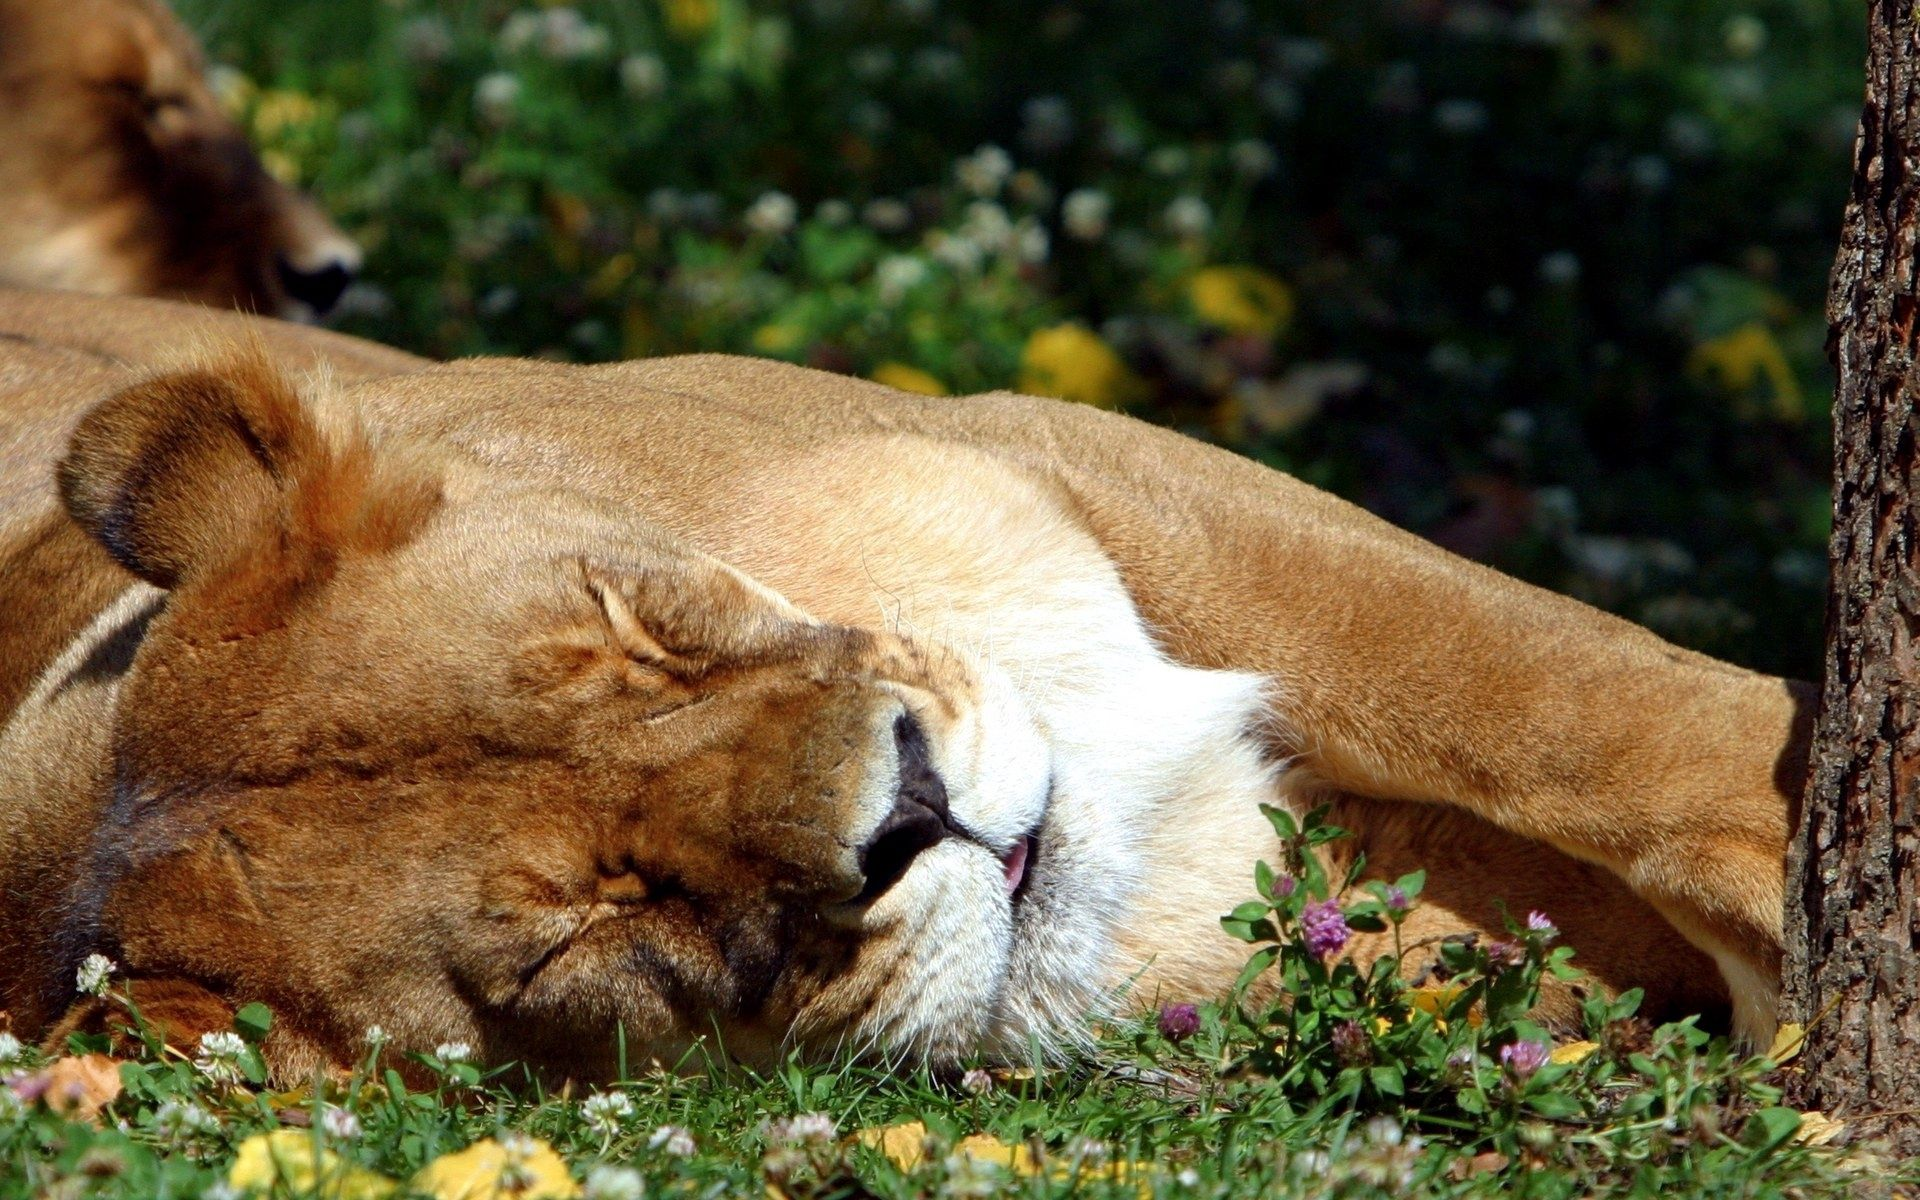 95782 download wallpaper Animals, Lion, Sleep, Dream, Grass, Big Cat, Predator screensavers and pictures for free